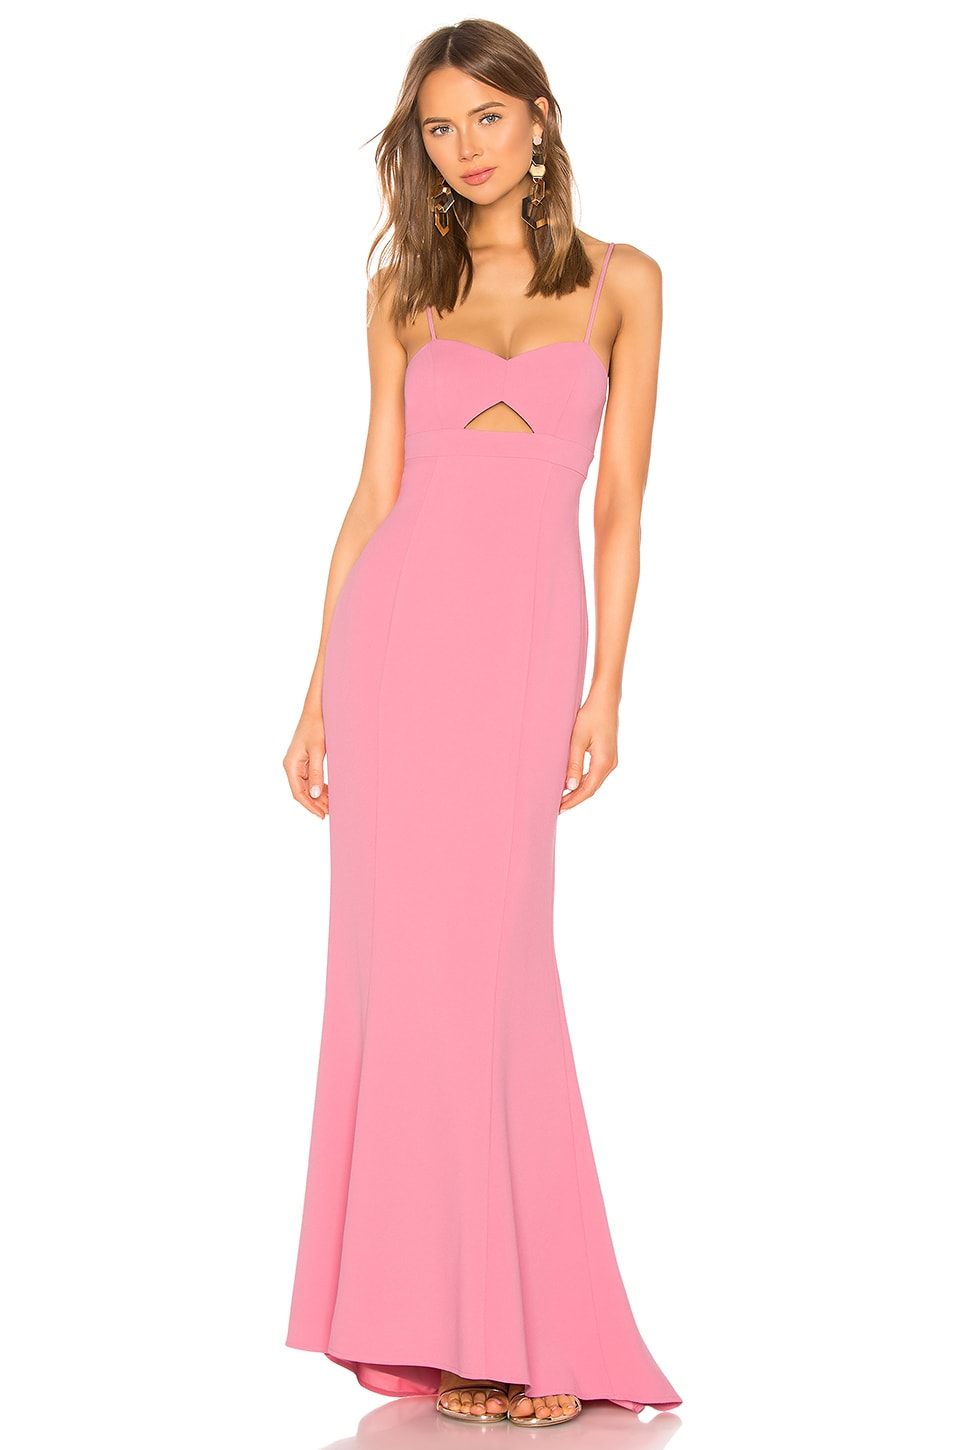 Lovers + Friends Bethany Gown in Pink